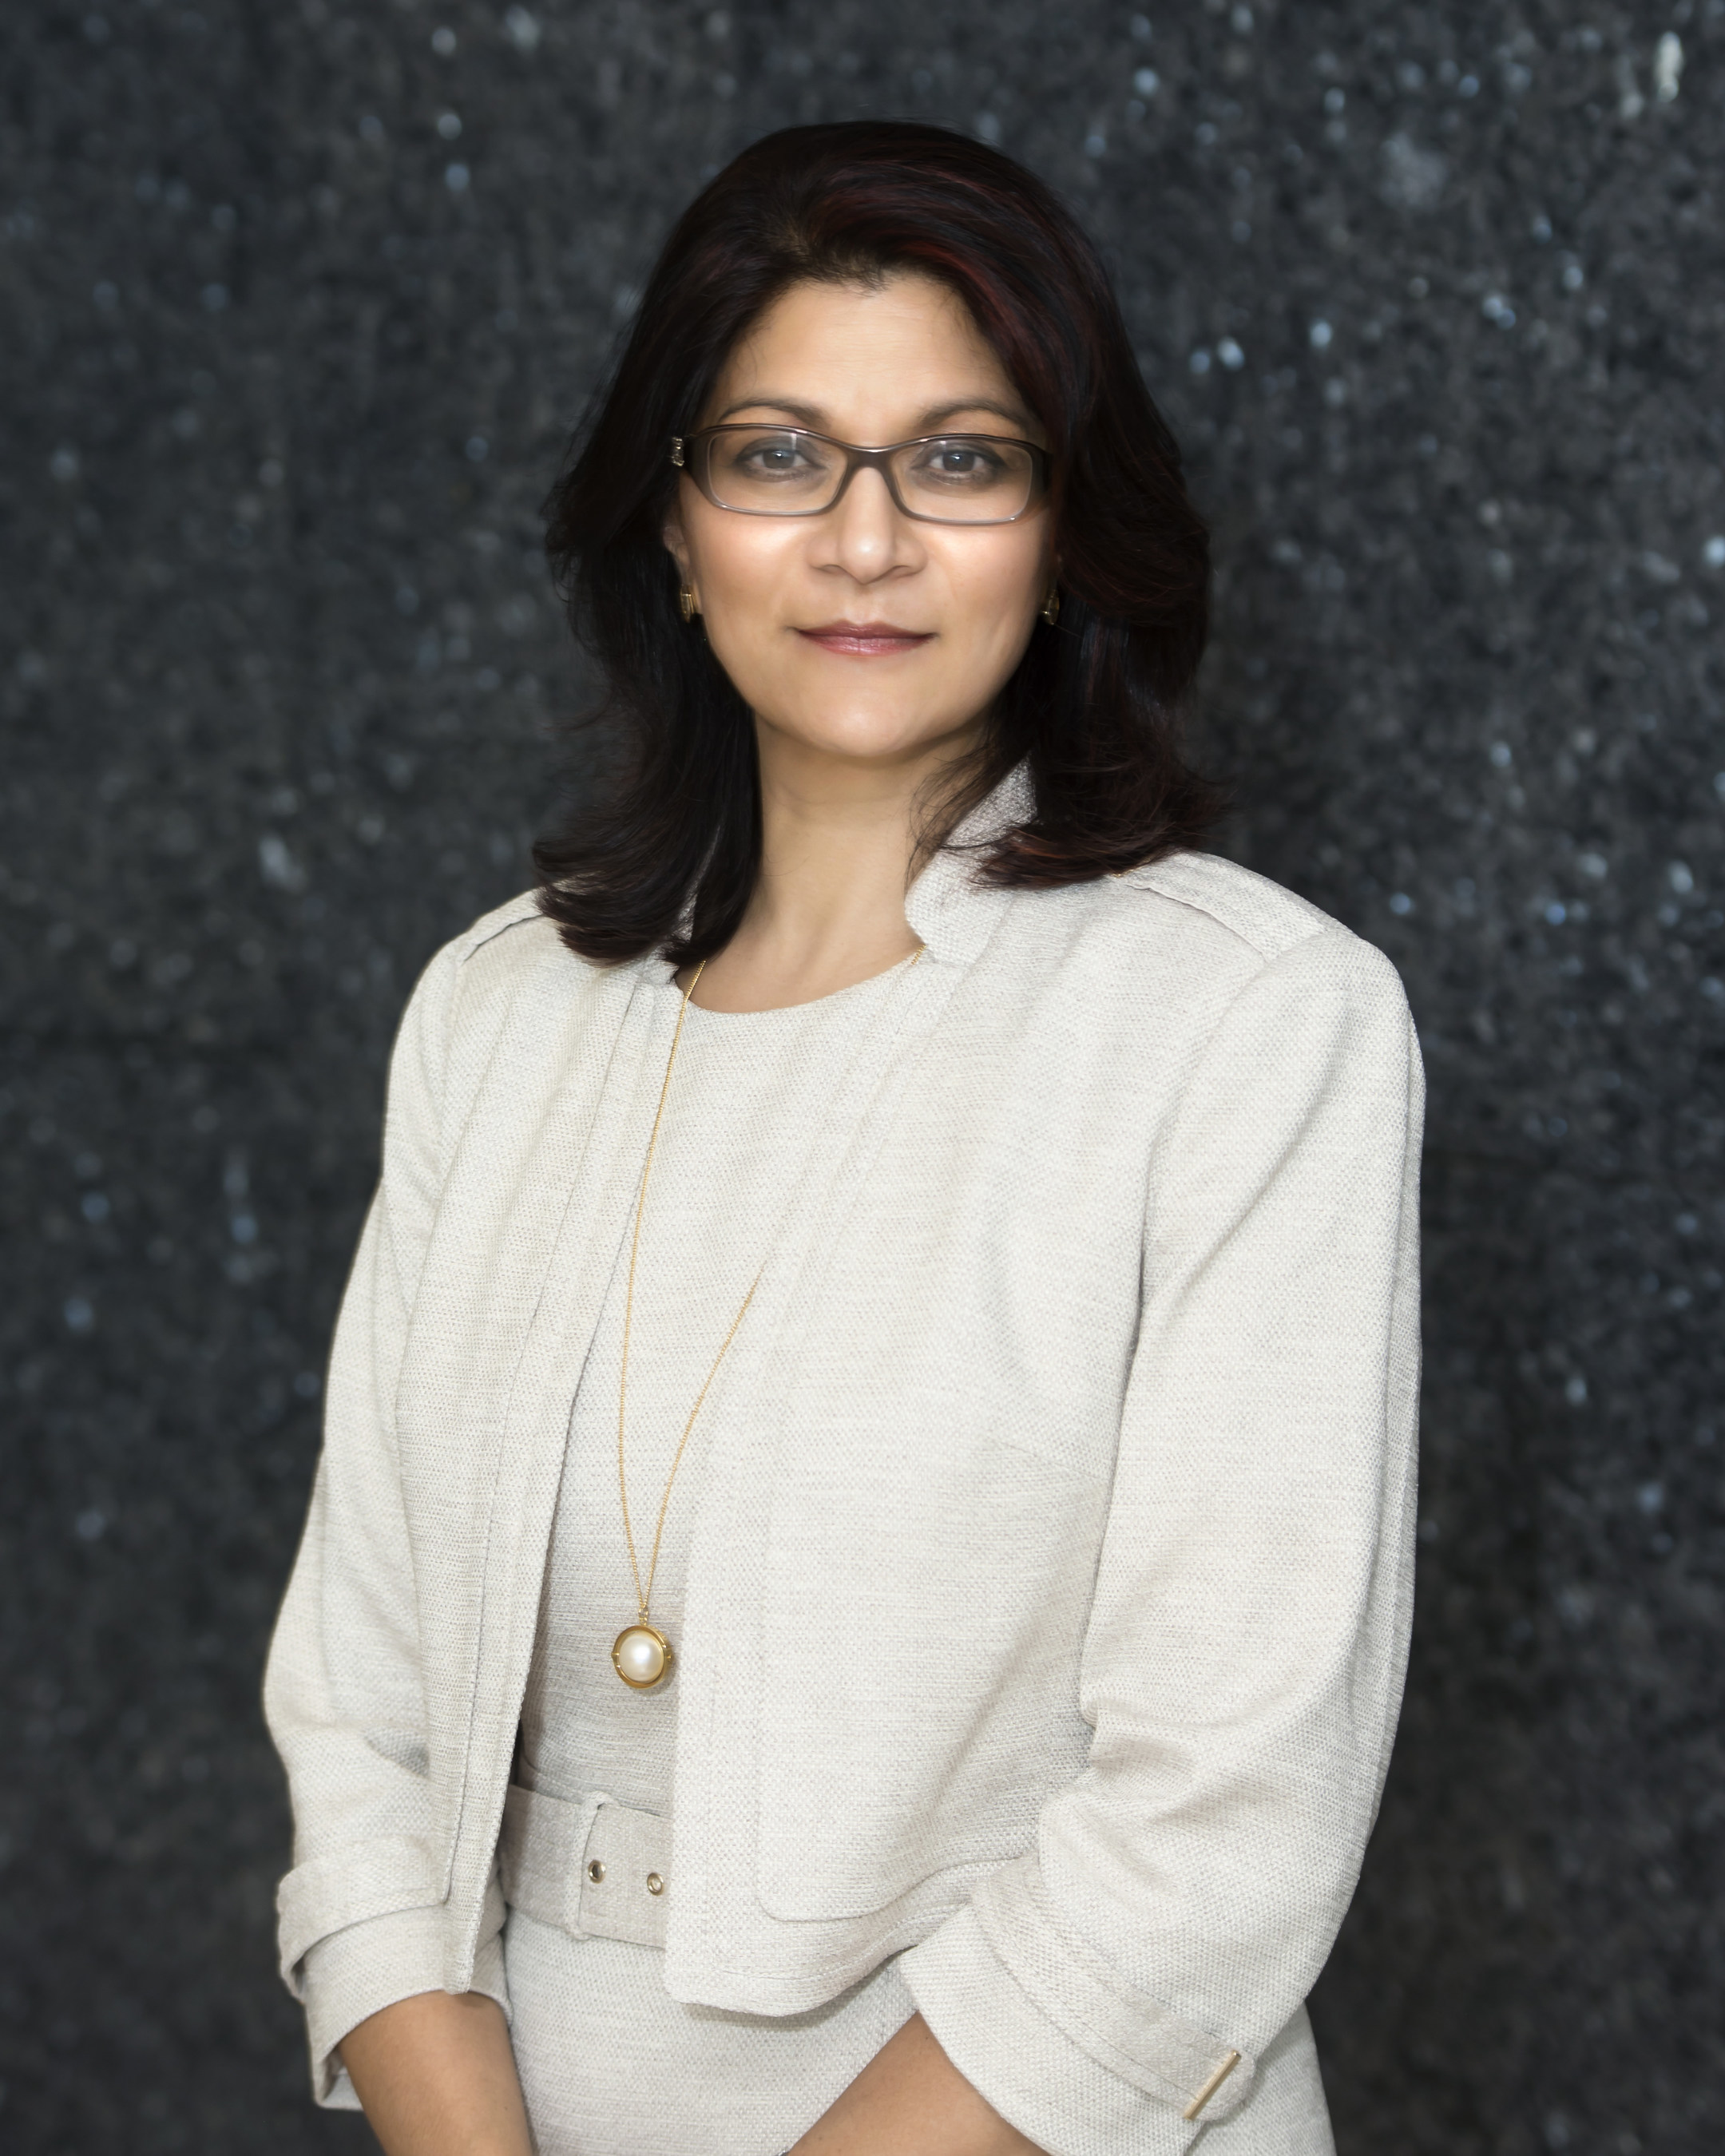 Advisian has appointed Geeta Thakorlal to the position of president for INTECSEA. The oil and gas offshore engineering consultancy's first female president touts over 25 years of award-winning excellence in the international oil and gas sector.